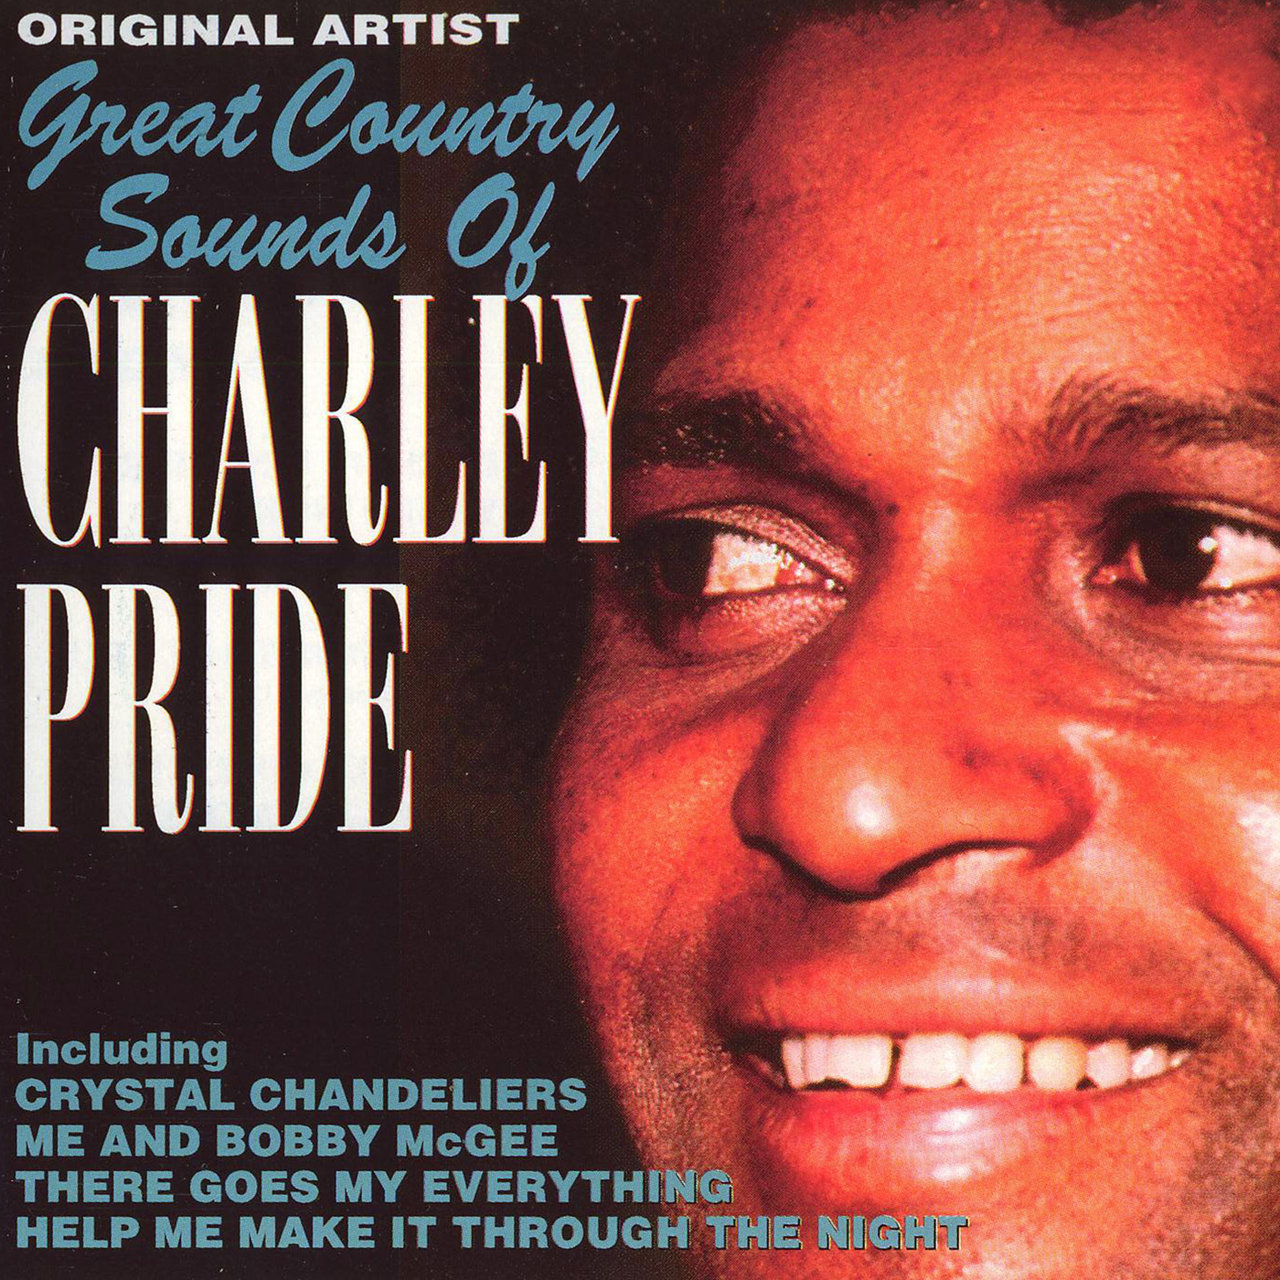 Tidal listen to the pride of country music on tidal great country sounds of charley pride aloadofball Images